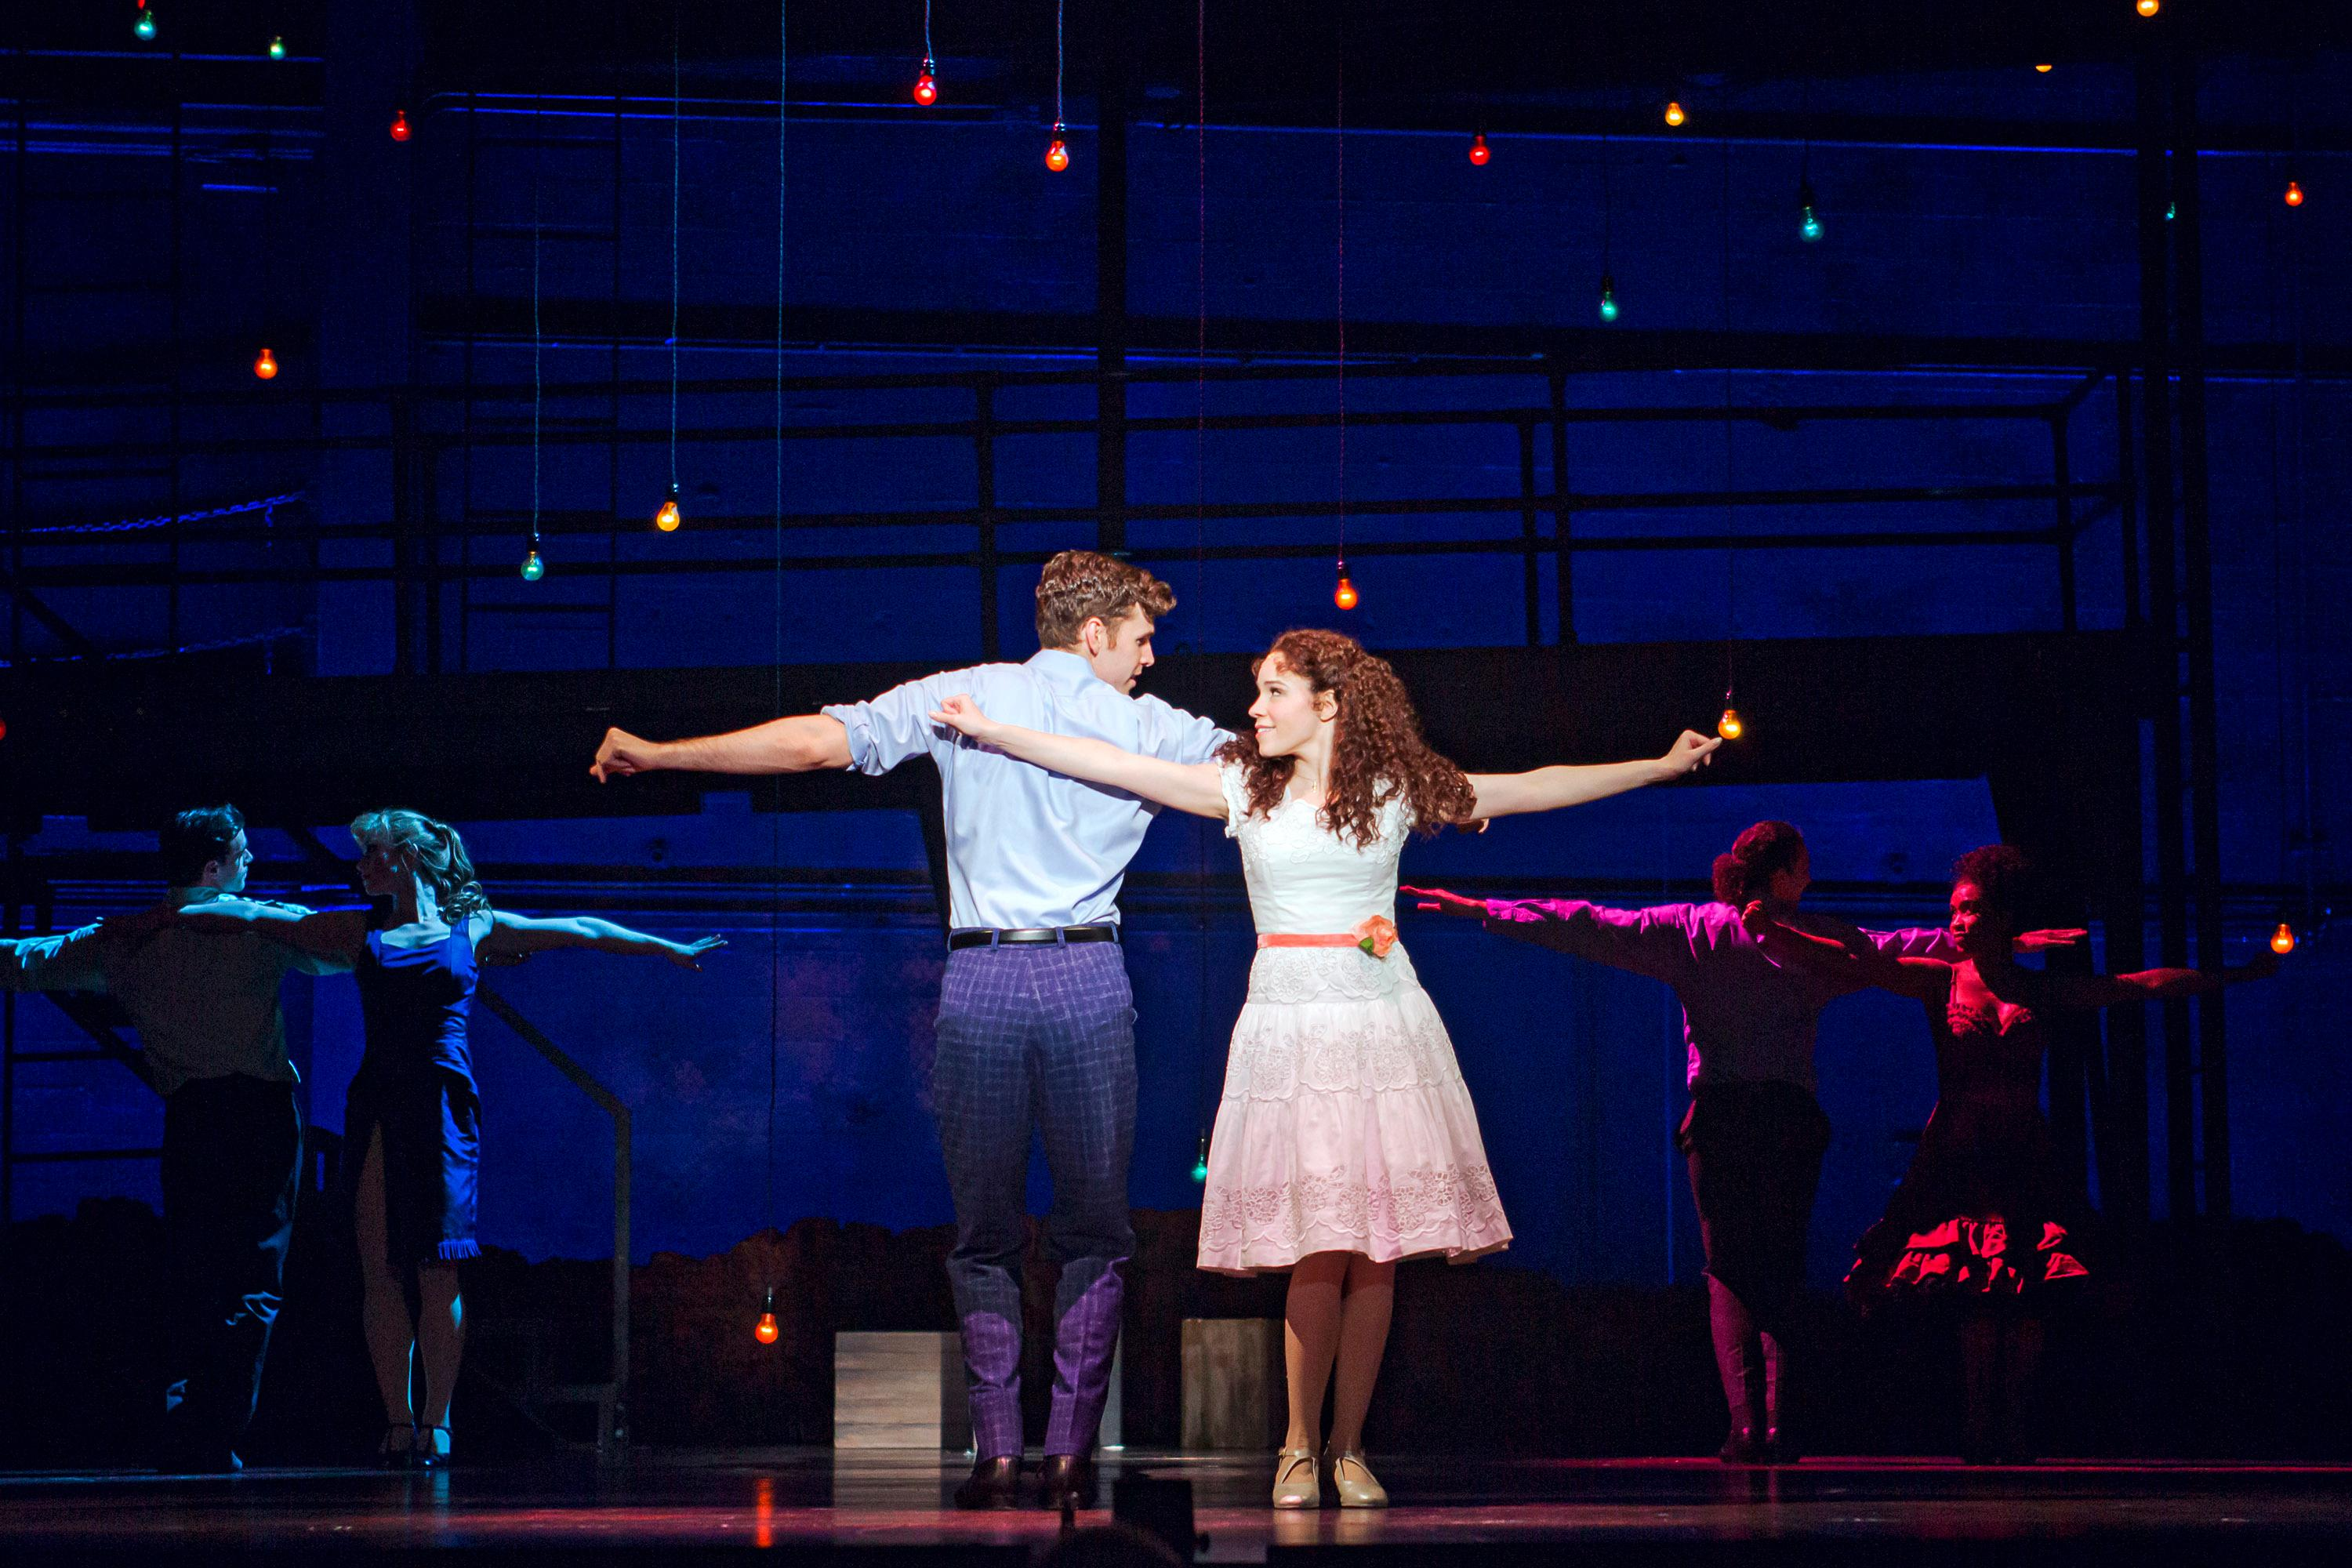 William Branner as Tony and Rebbekah Vega-Romero as Maria in West Side Story at The 5th Avenue Theatre (Photo Credit Tracy Martin)